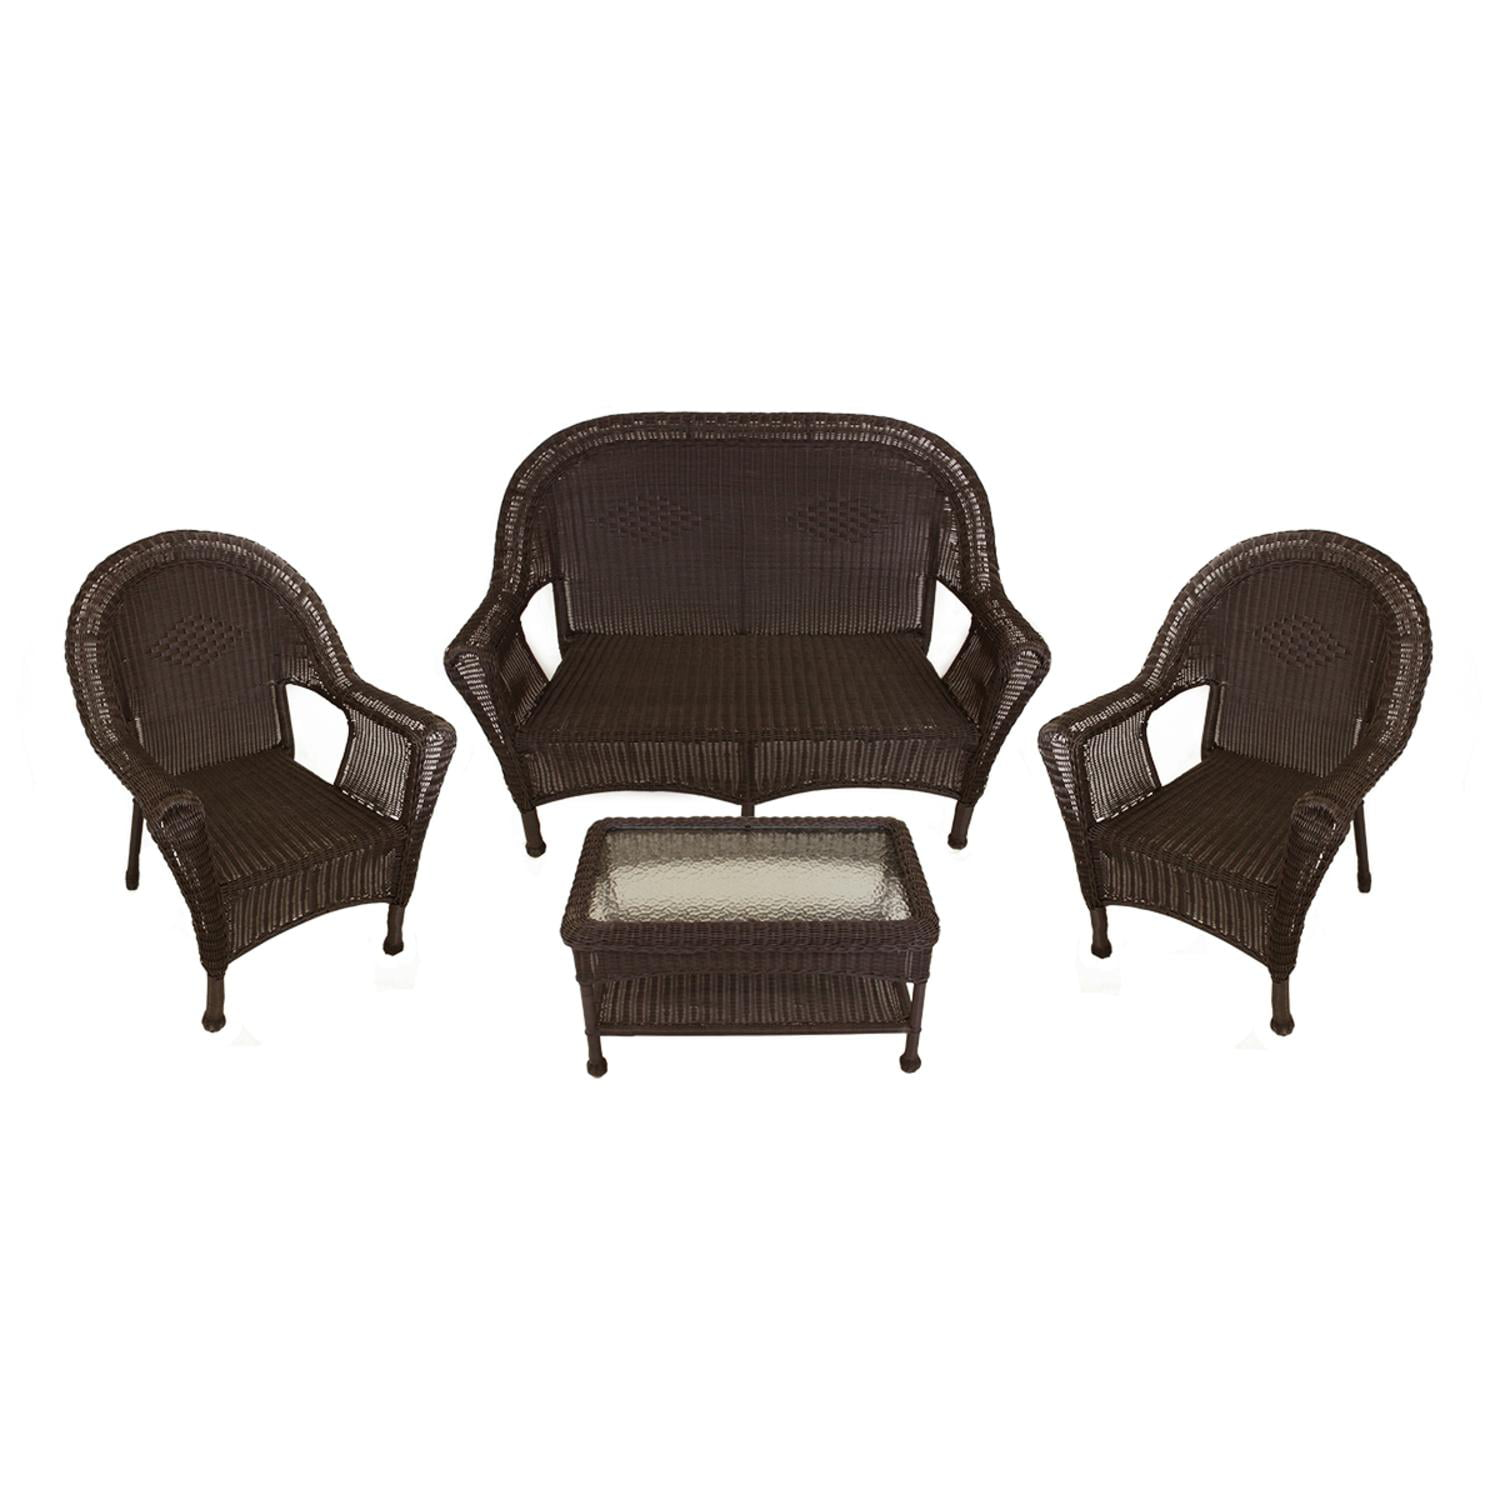 4 Piece Brown Resin Wicker Patio Furniture Set  2 Chairs Loveseat U0026 Table